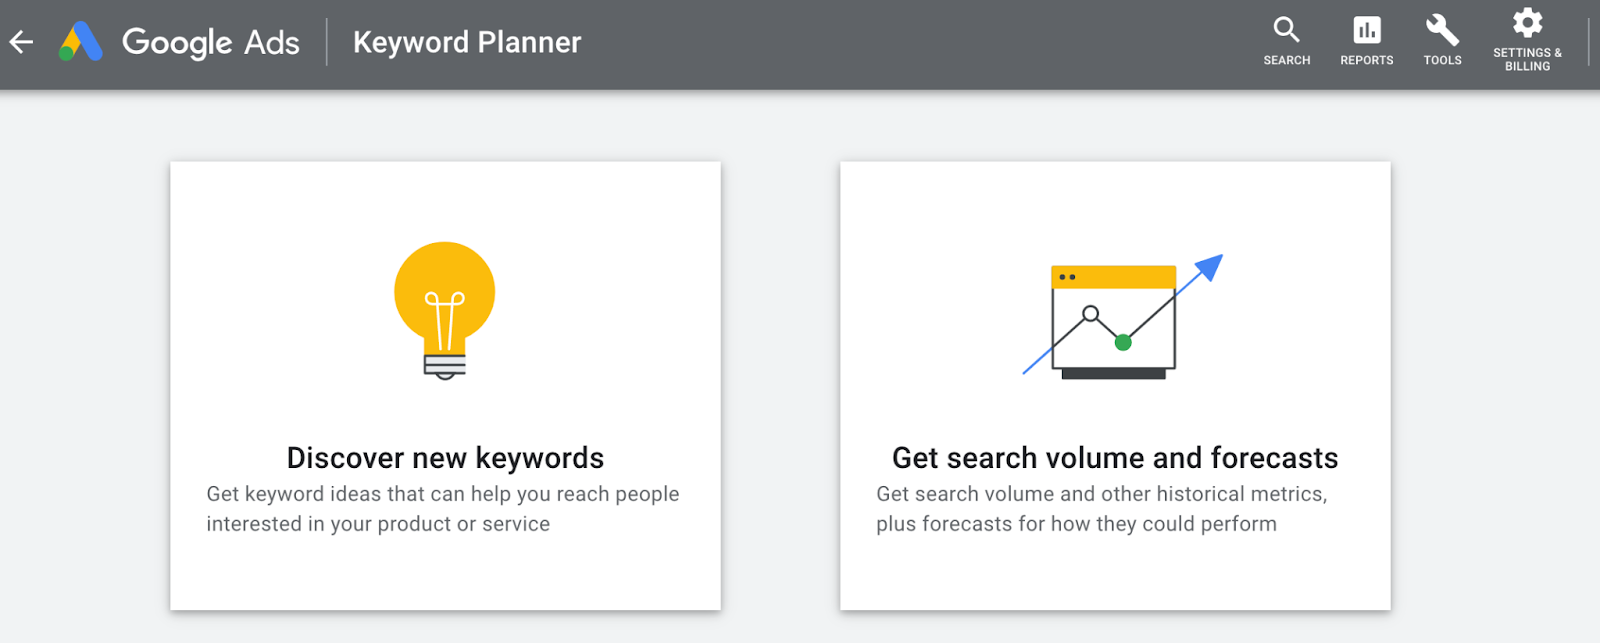 Discover new keywords or Get search volume and forecasts